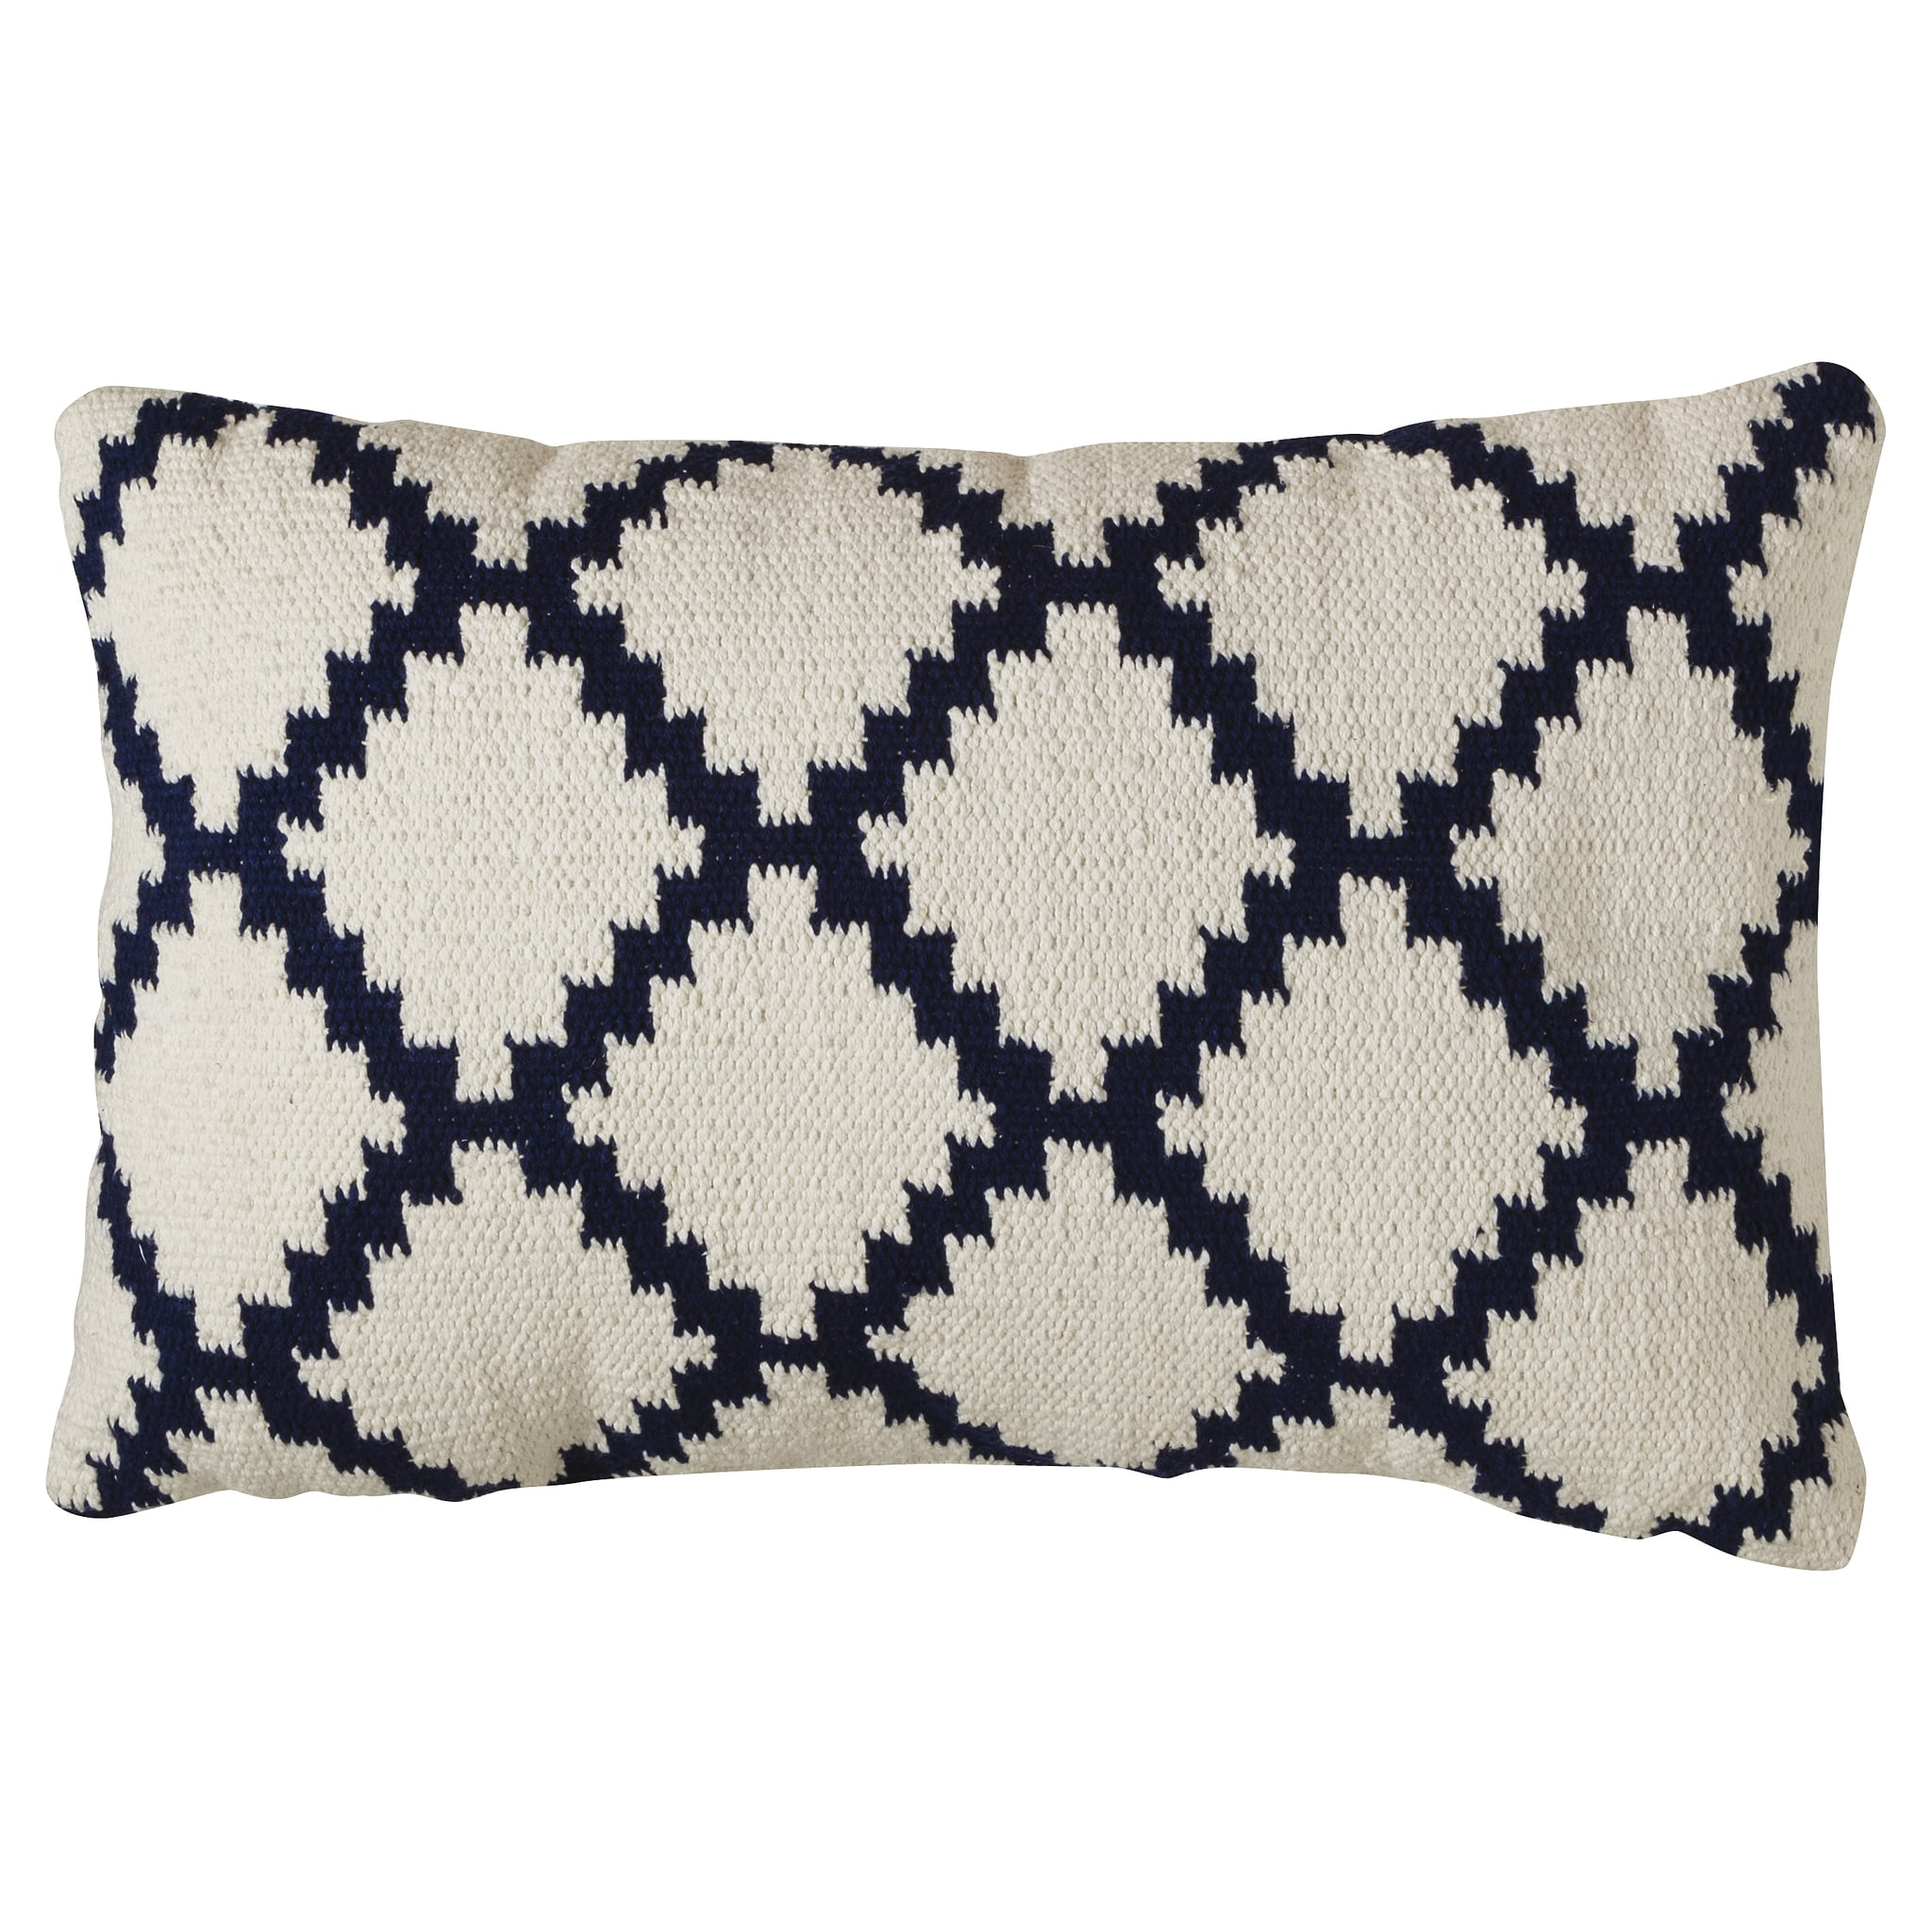 Cozy up to the graphic diamond pattern of this accent pillow ($20).